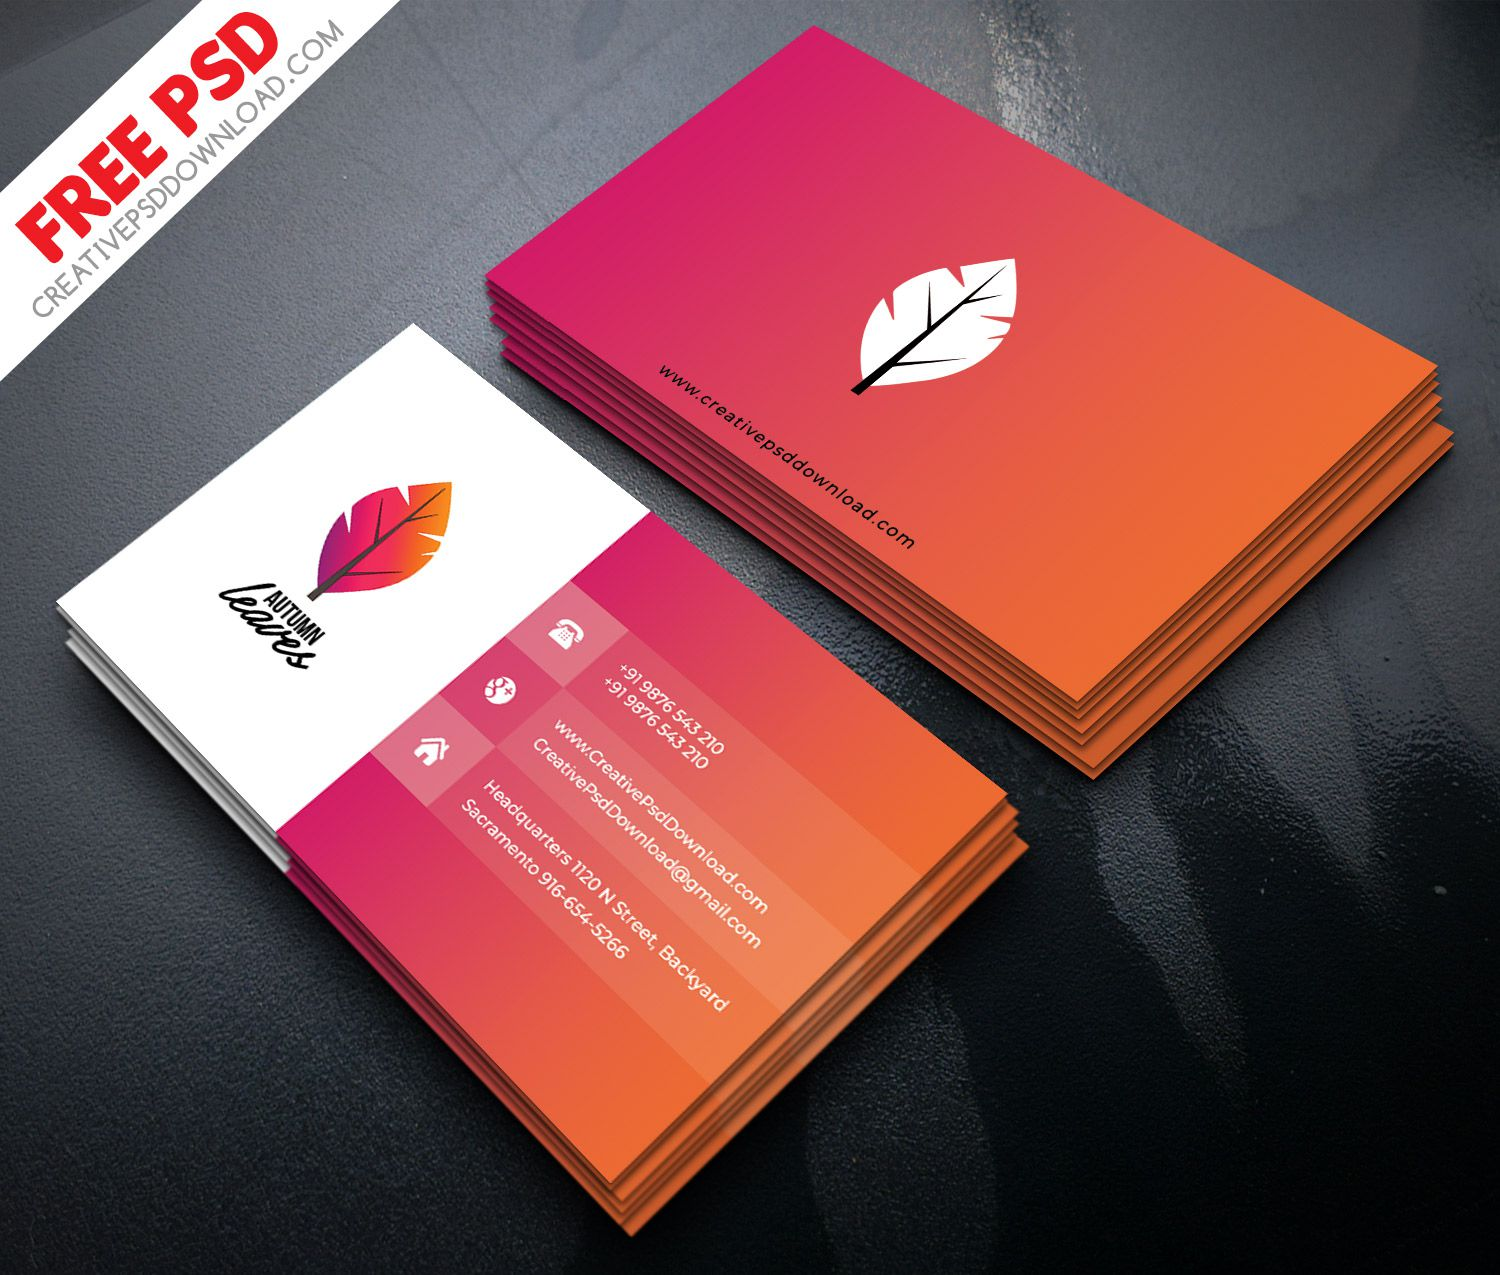 011 Wondrou Blank Busines Card Template Psd Free Download Concept  PhotoshopFull